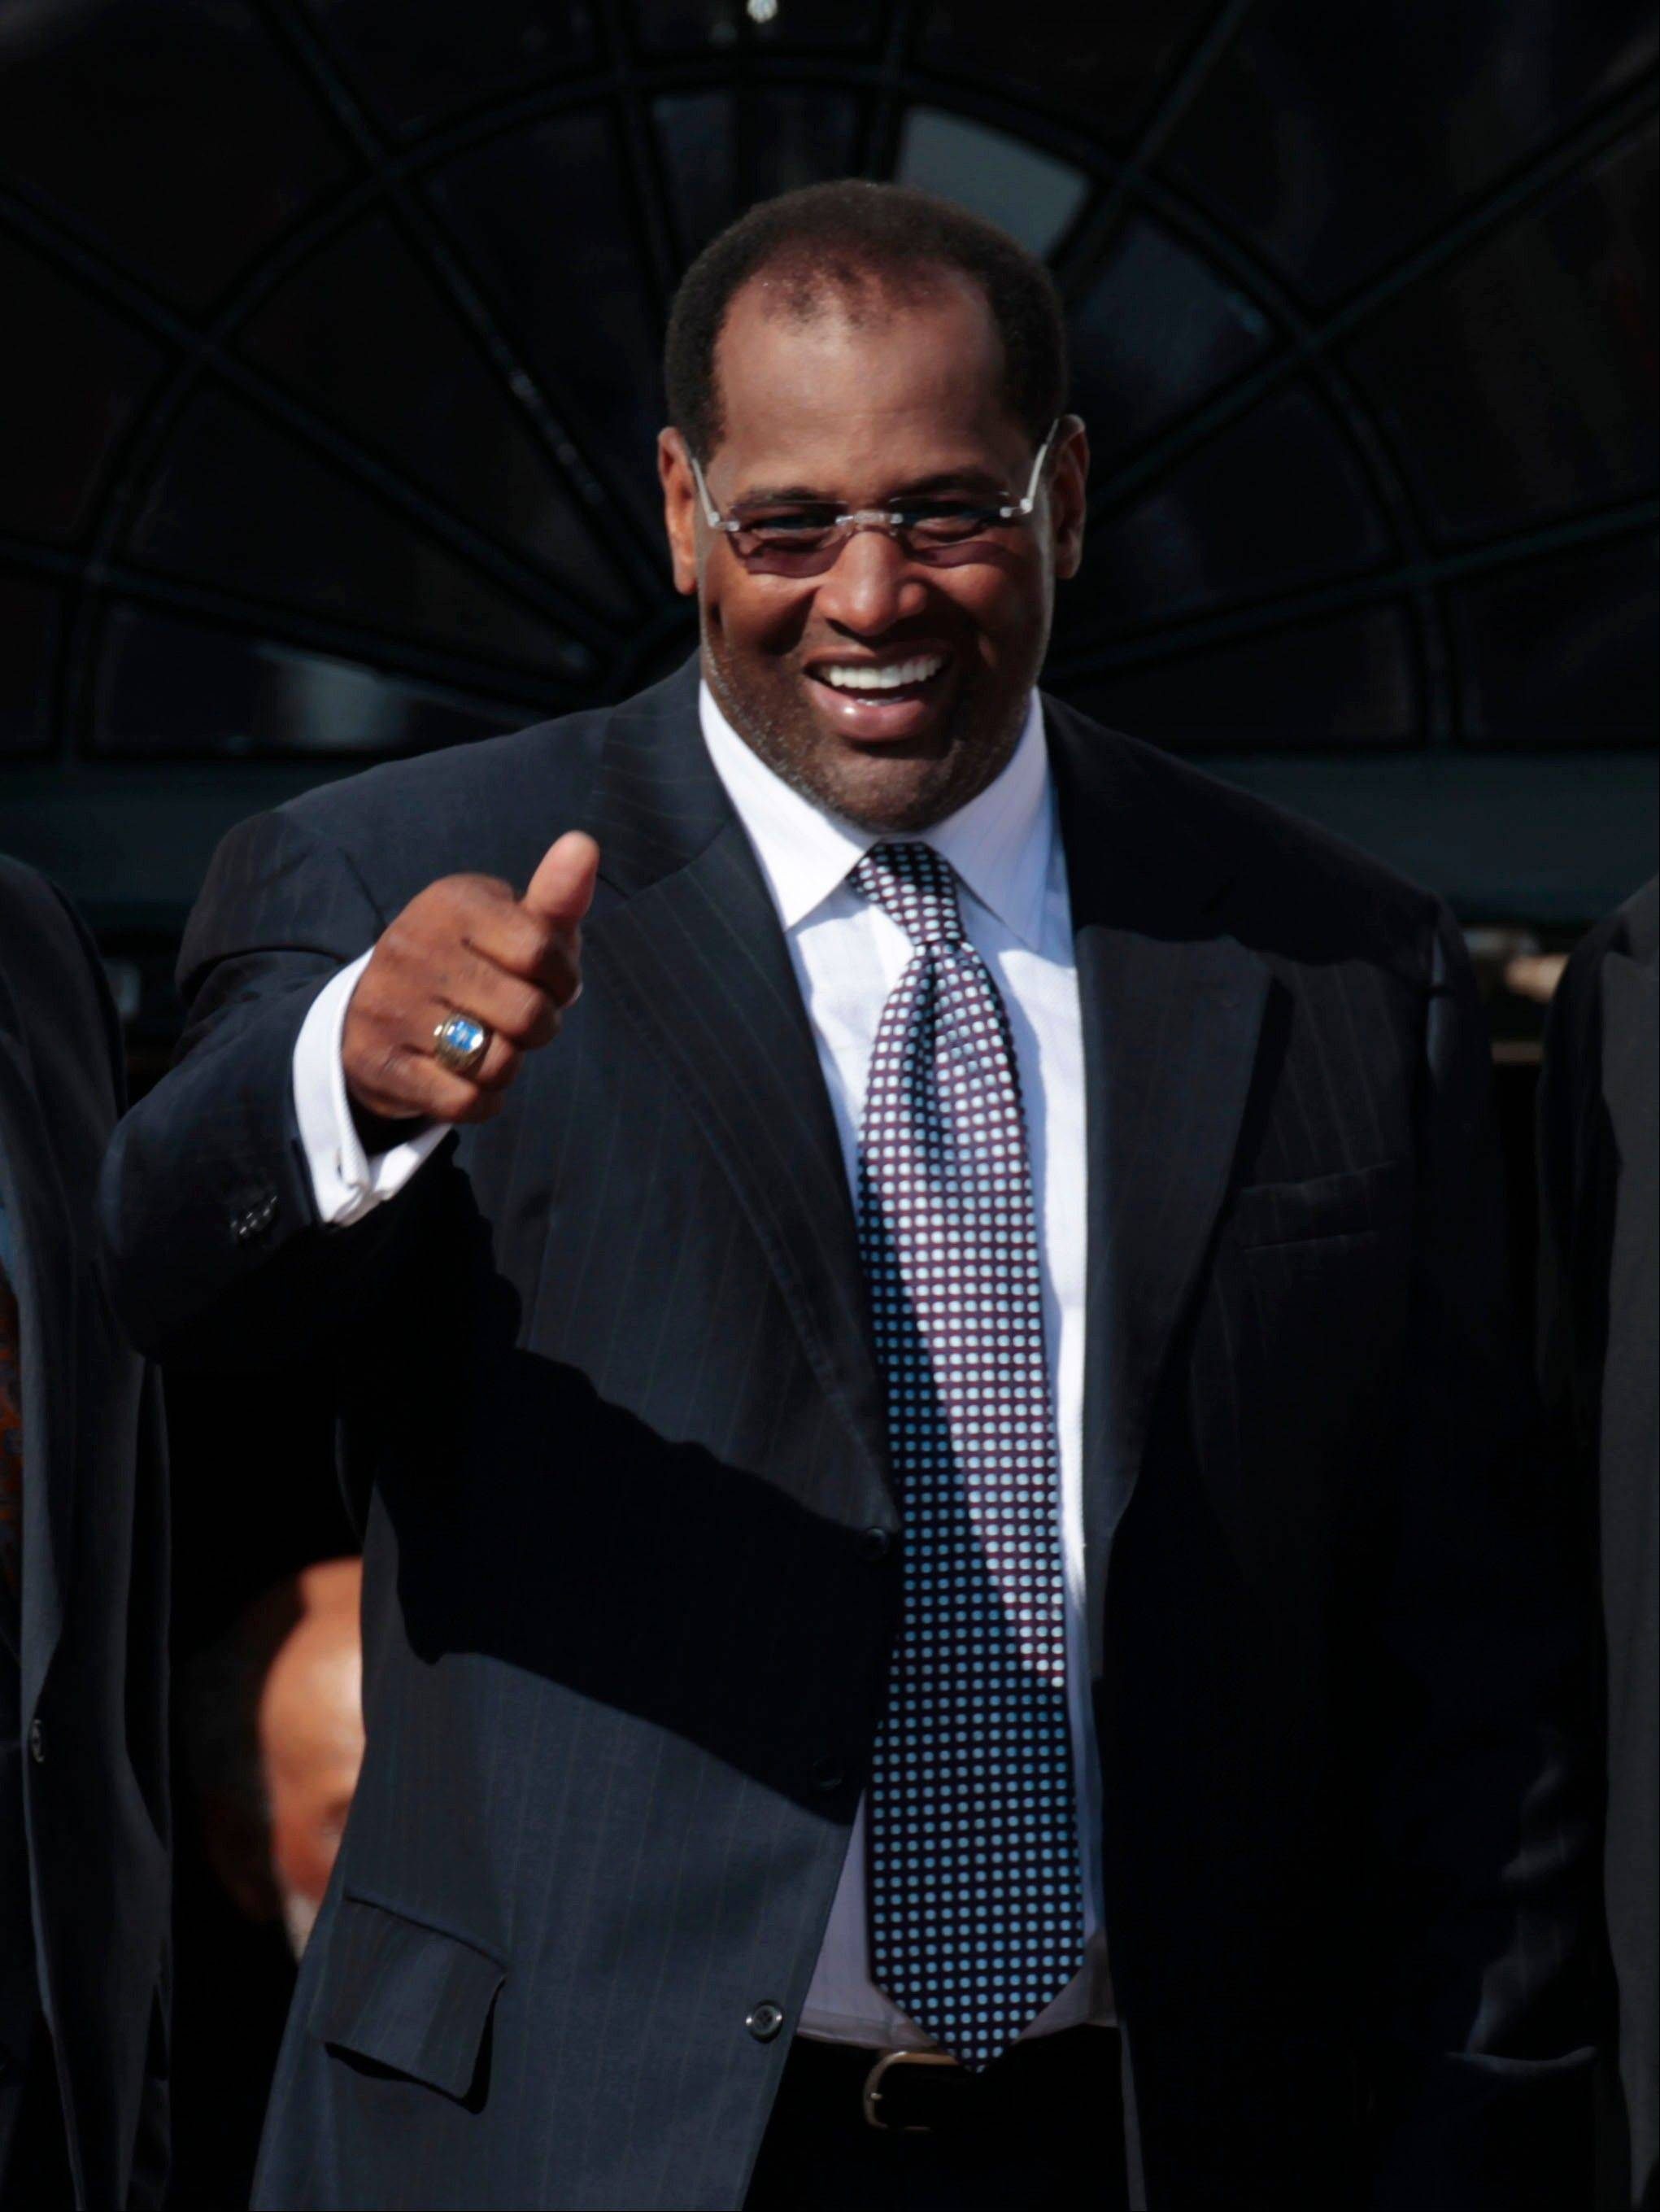 ASSOCIATED PRESSFormer Bears player Richard Dent, gives a 'thumbs-up' during a ceremony honoring the 1985 Super Bowl XX Champions Chicago Bears football team, hosted by President Barack Obama, on the South Lawn of the White House.